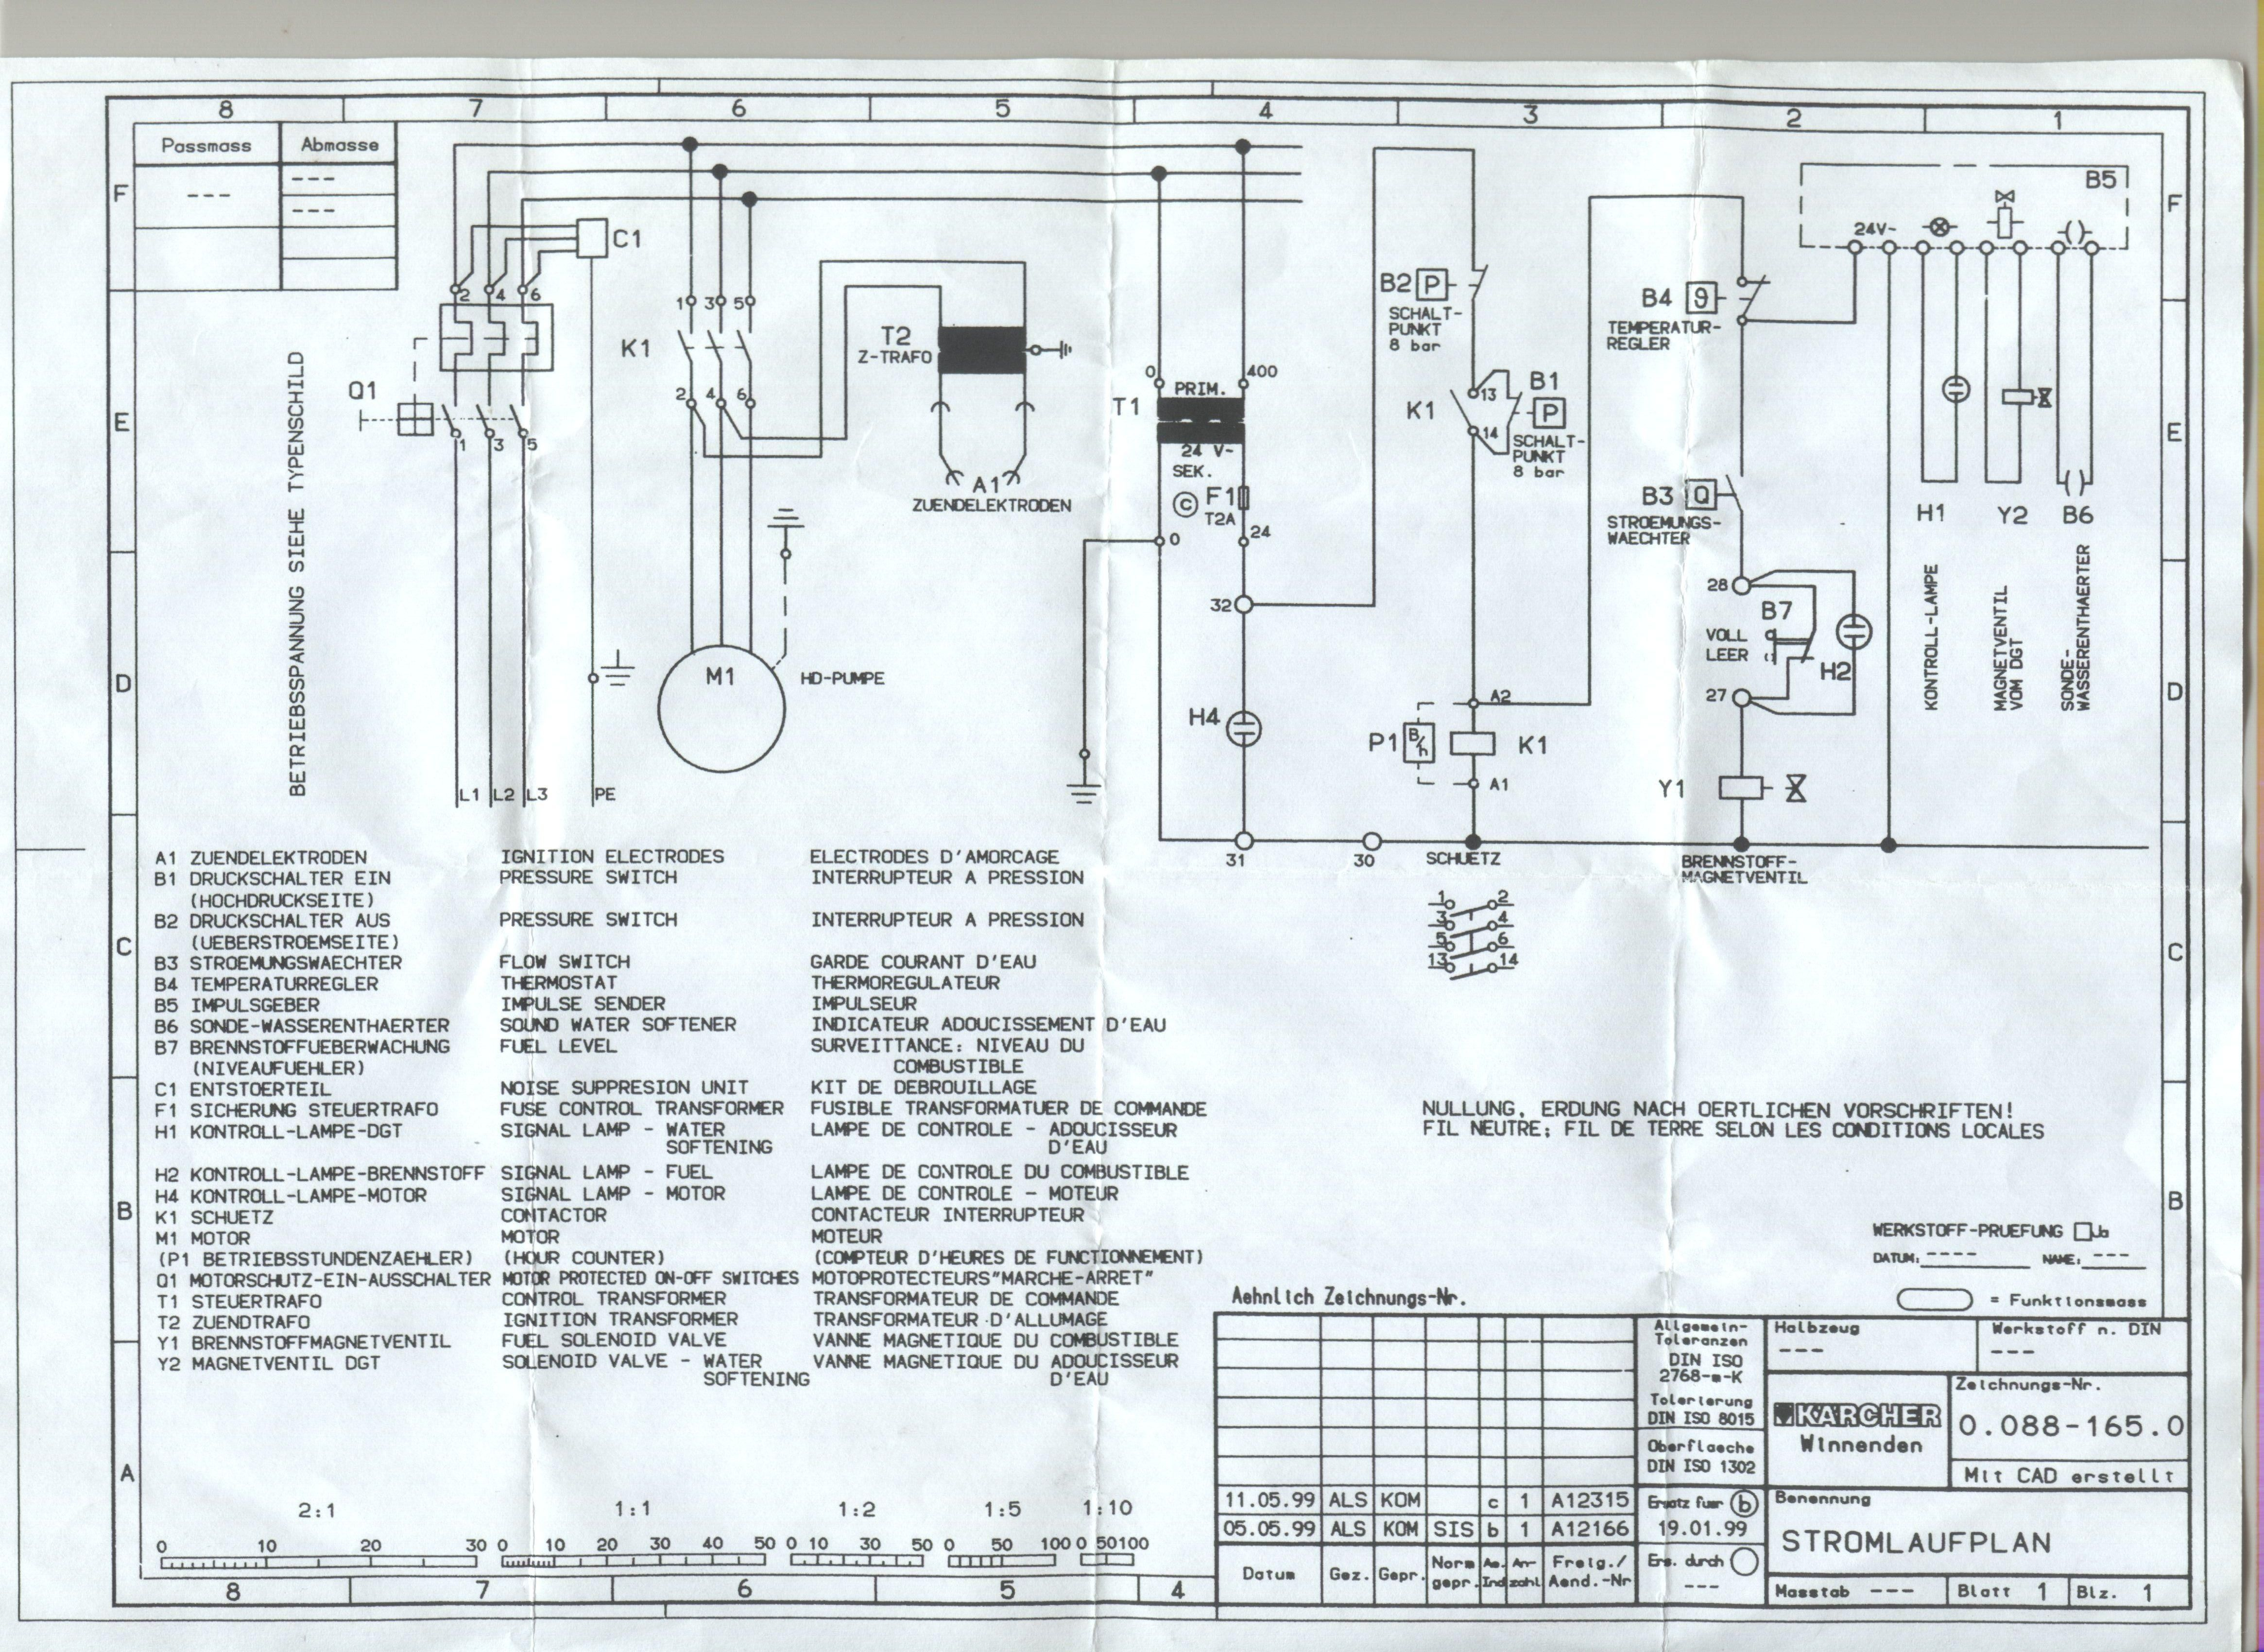 1997 Mercury Villager Exhaust Diagram as well Saab 93 Convertible Roof Wiring Diagram moreover 66 Mustang Fuse Box Diagram moreover Electrical Wiring Codes For Indiana further Wiring Diagrams For 1987 Alfa Romeo Spider. on vw wiring diagrams